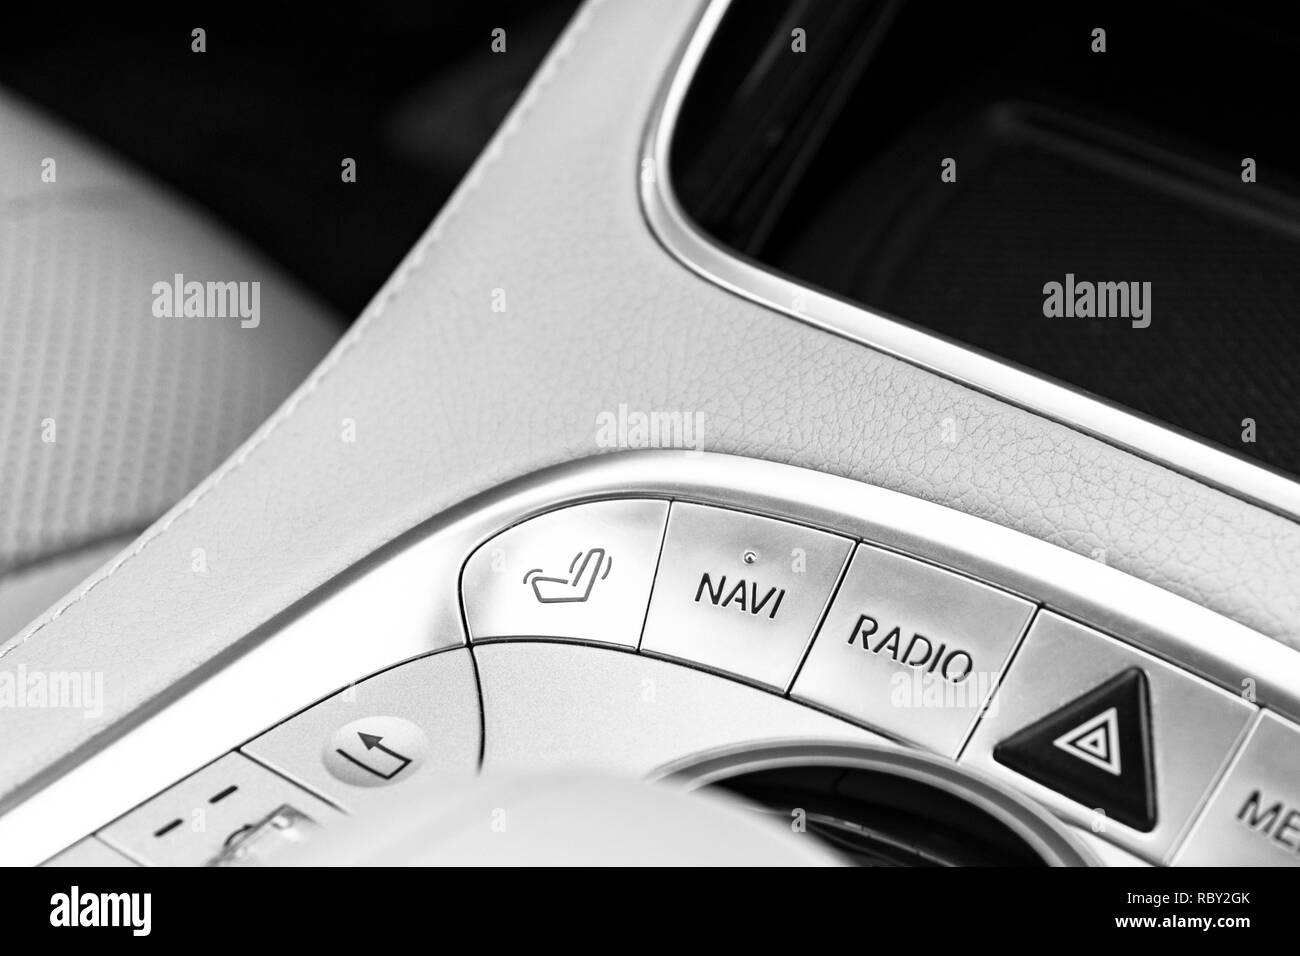 Media and navigation control buttons of a Modern car. Car interior details. White leather interior of the luxury modern car. Car detailing. Black and  - Stock Image